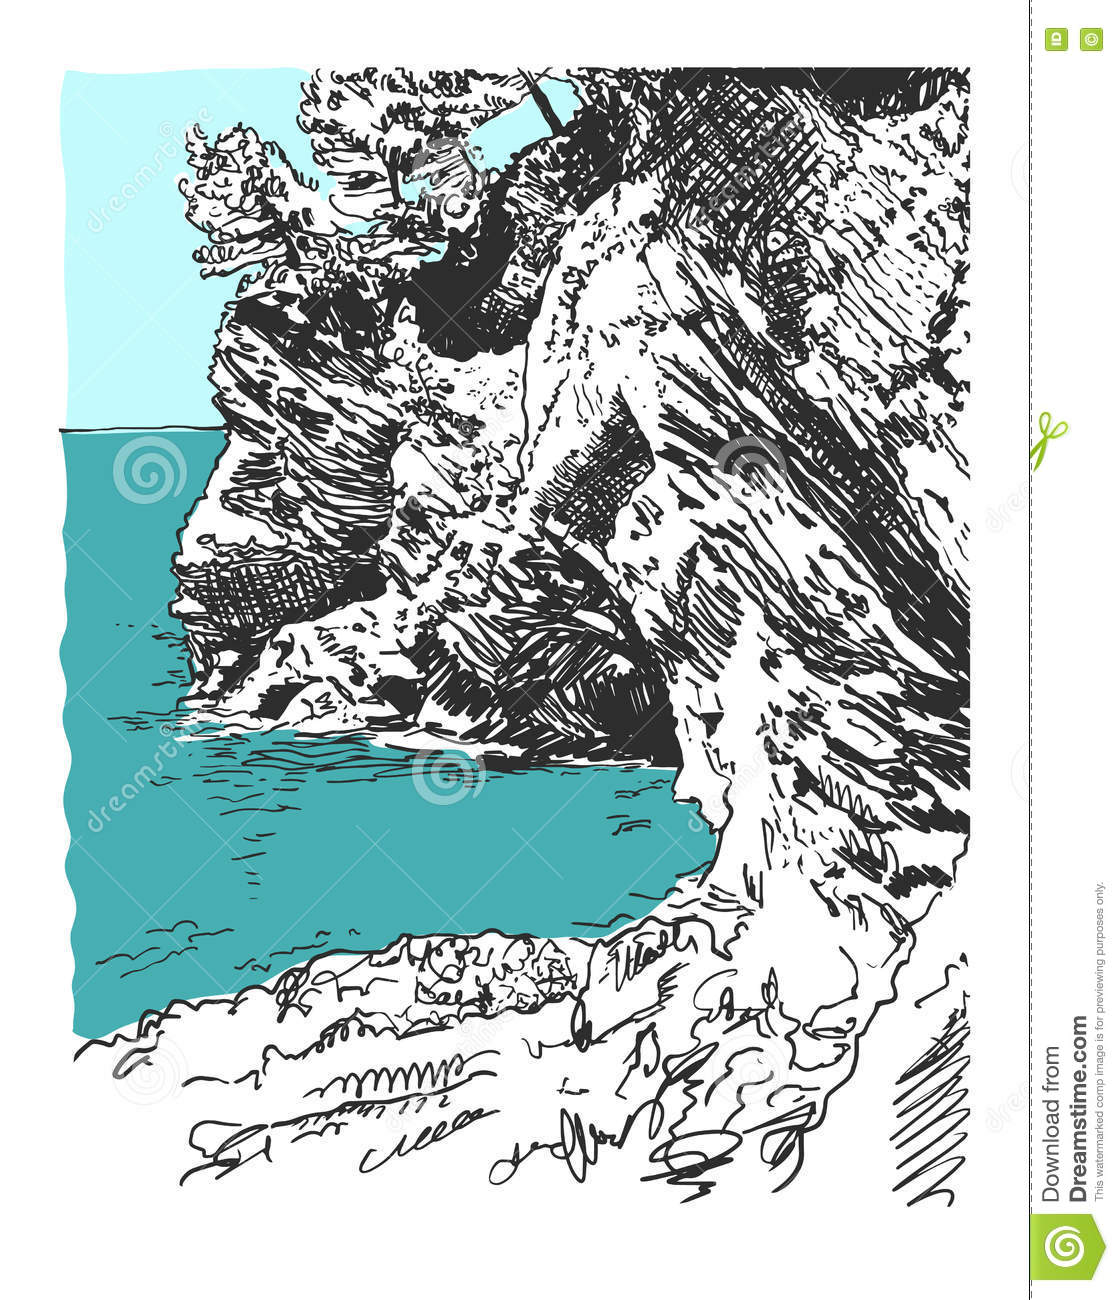 Sketch Drawing Of Nature Rock At Adriatic Sea In Petrovac Monten.